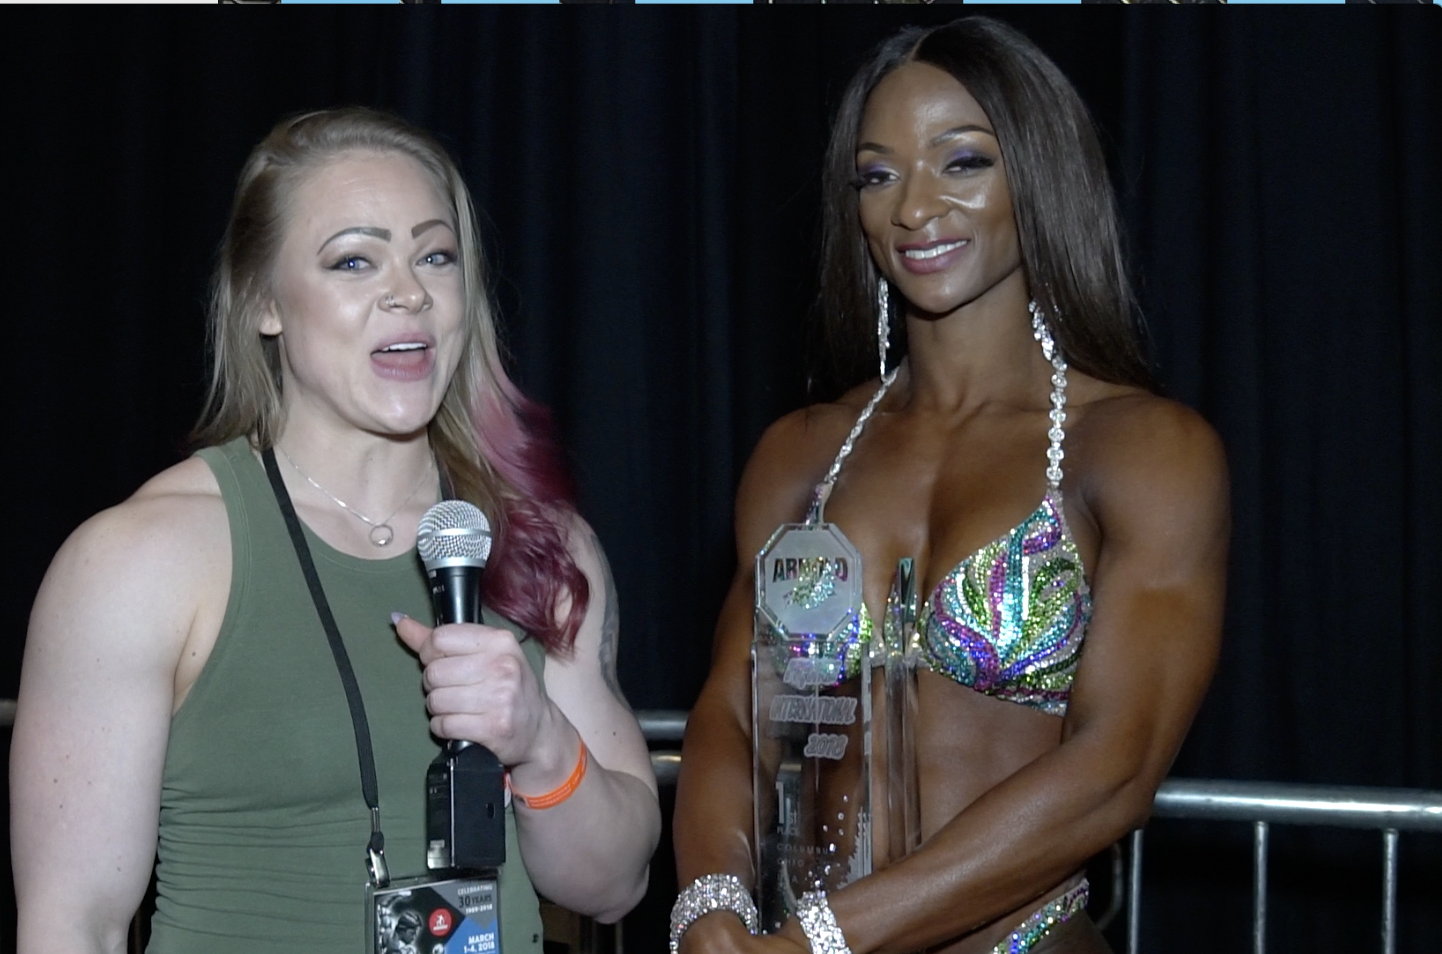 2018 Arnold Figure International Winner Candice Lewis Interview  By Jordan Hartsell For NPC NEWS ONLINE.com